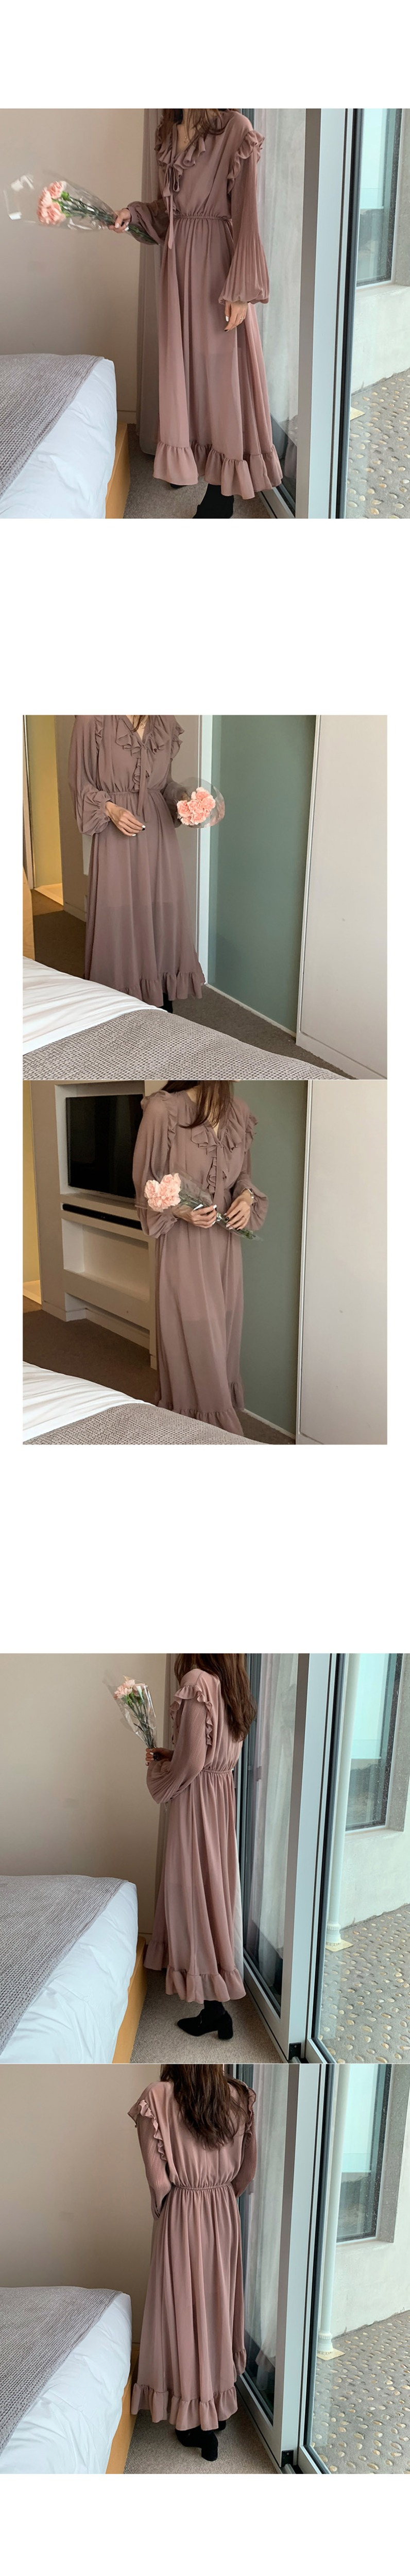 H6505bbec788b4da99ccbe658491f1321d - Autumn O-Neck Long Sleeves Chiffon Ruffles Maxi Dress